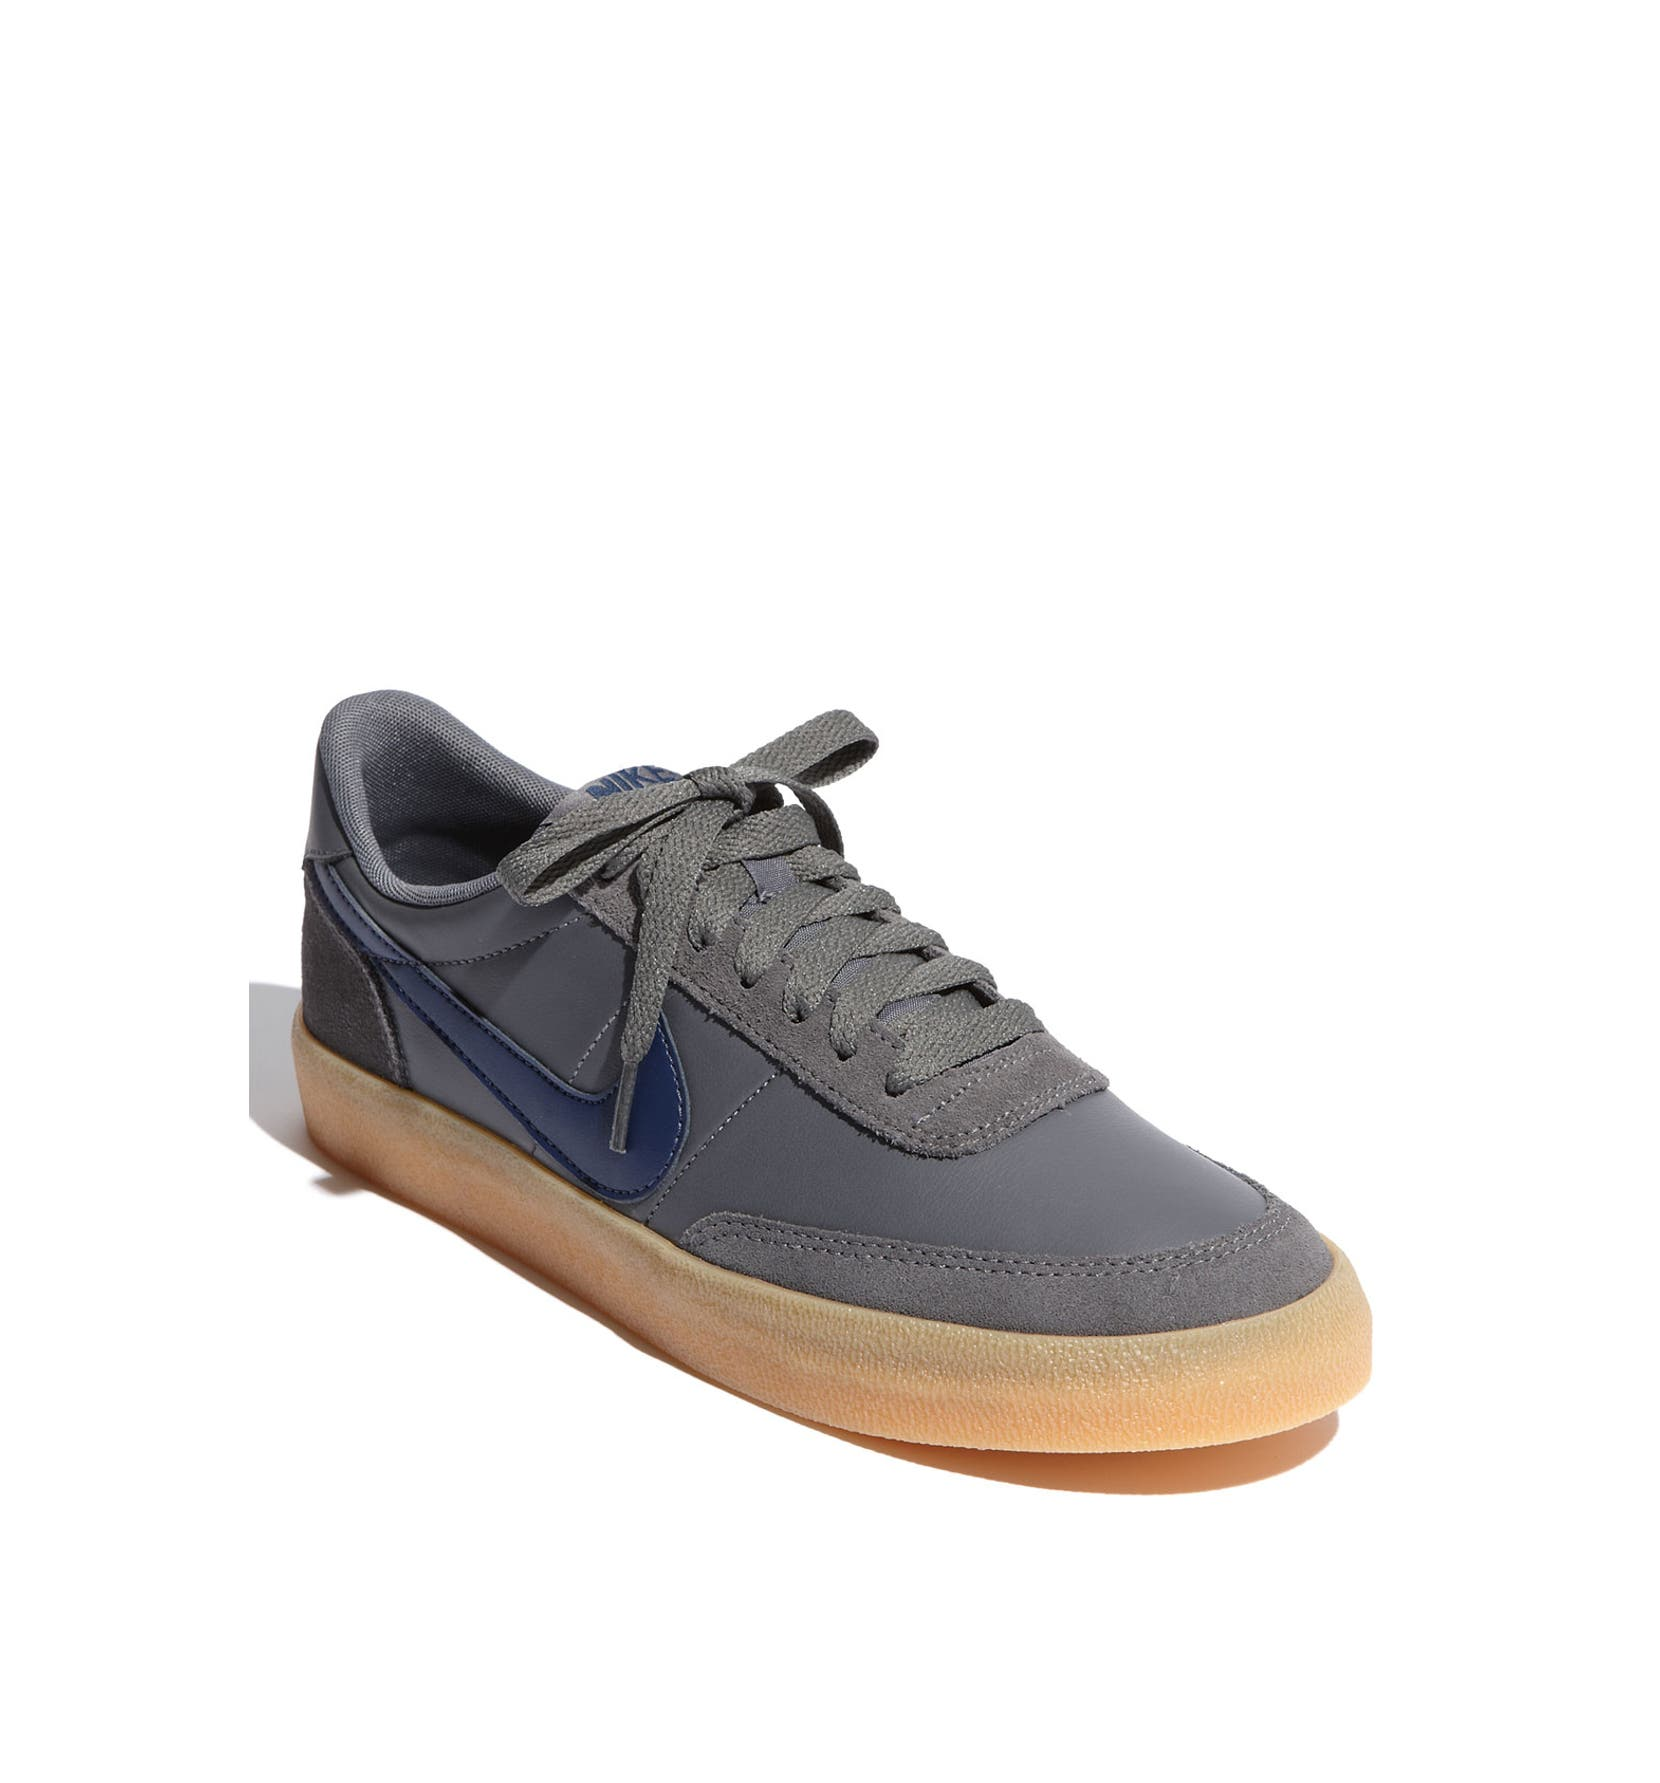 46bf5af76689 ... Leather Shoe  Nike Killshot 2 Sneaker Nordstrom ...